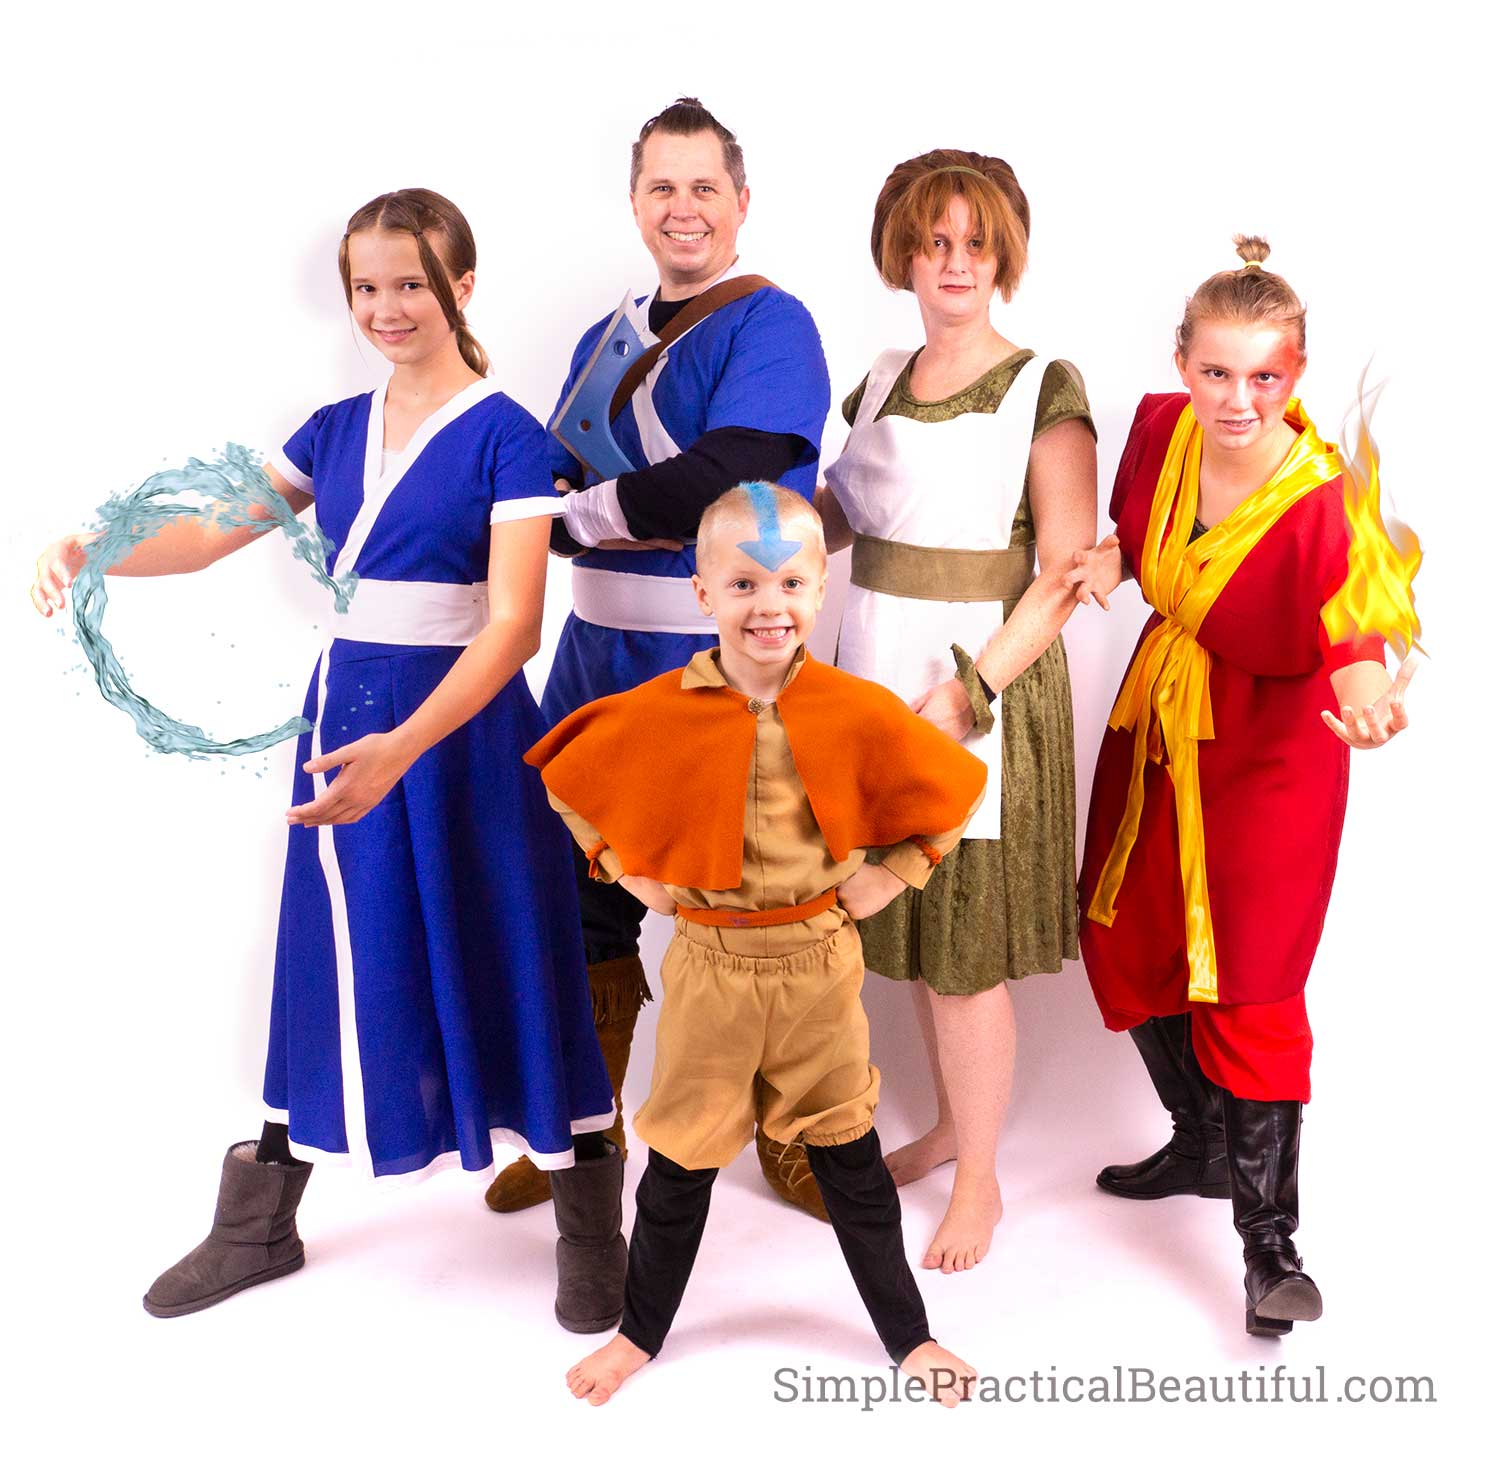 Avatar the Last Airbender characters cosplay